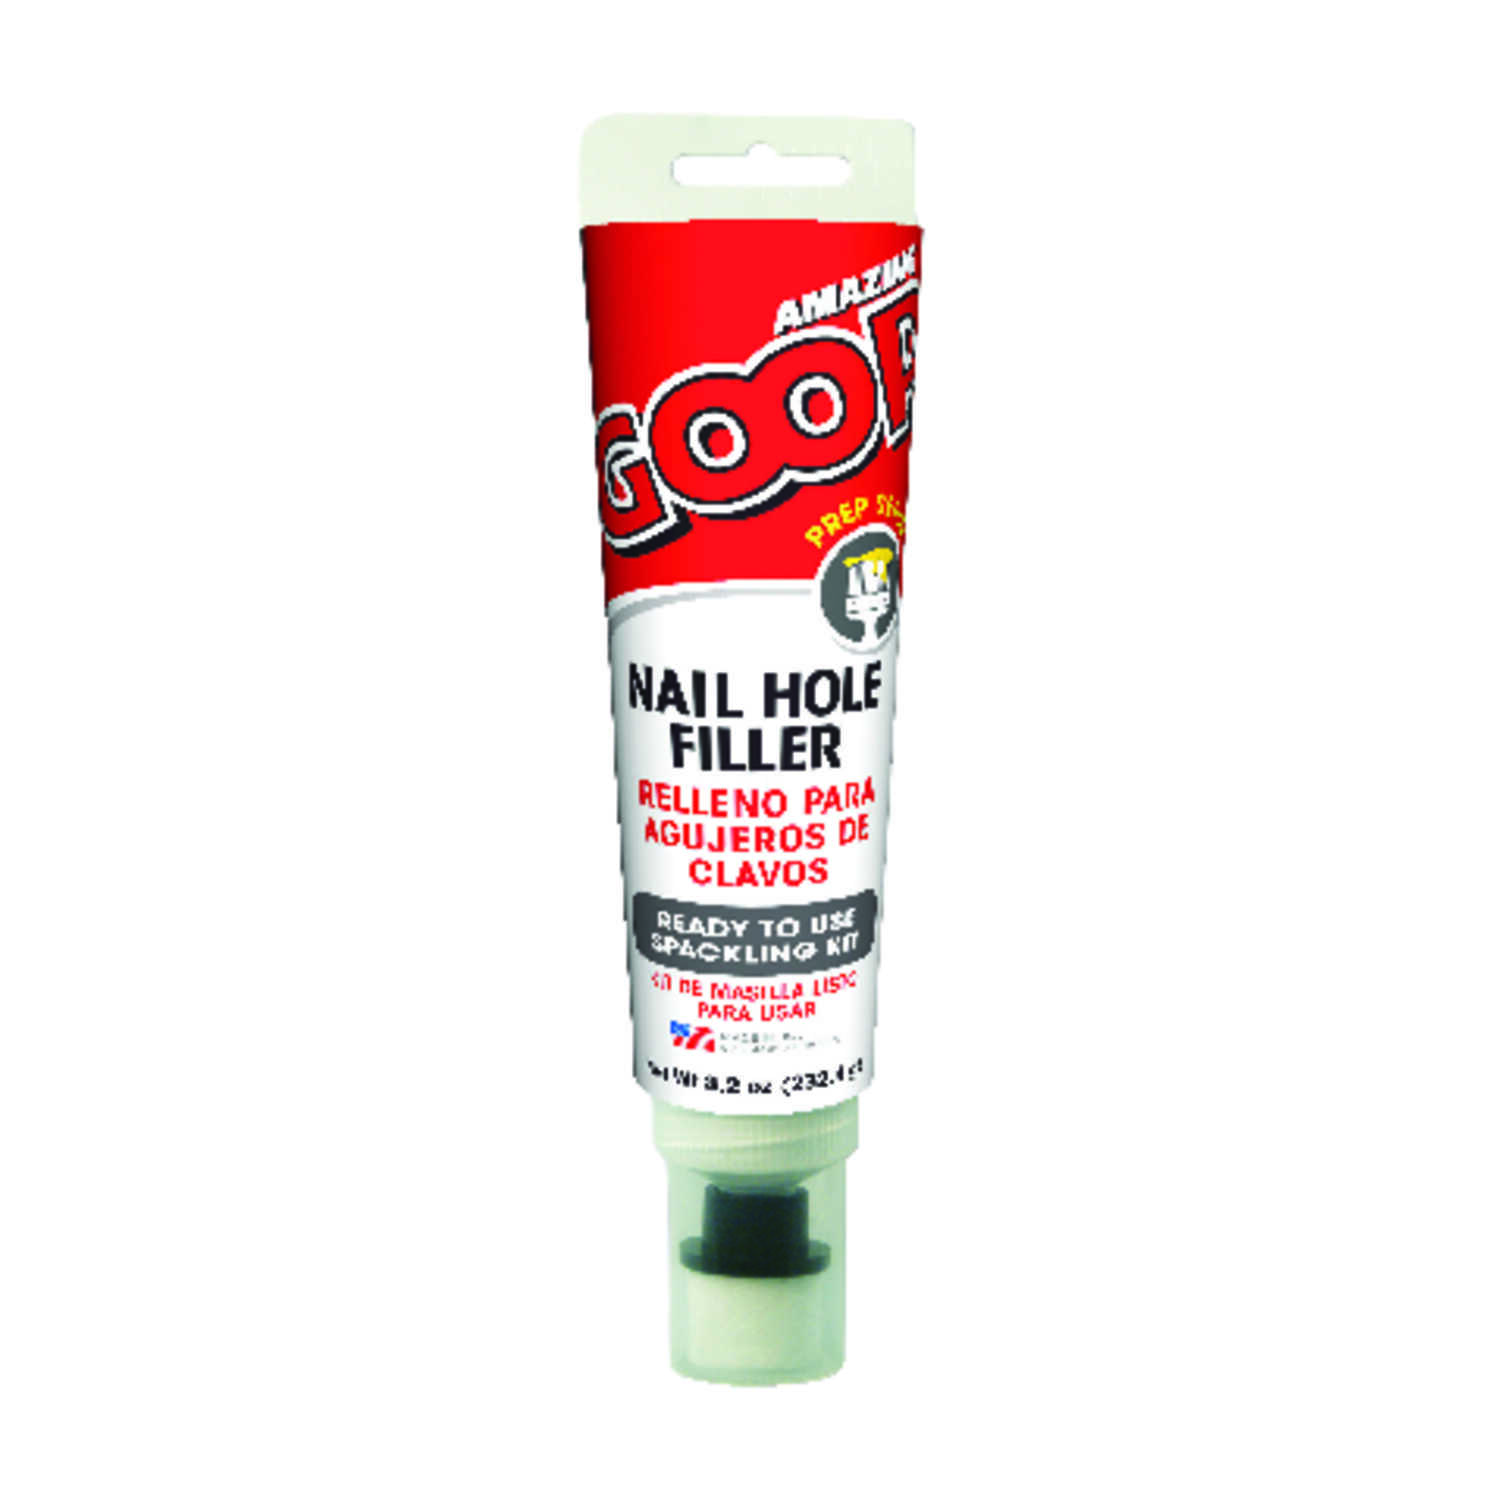 Amazing Goop  Ready to Use White  Nail Hole Filler  8.2 oz.